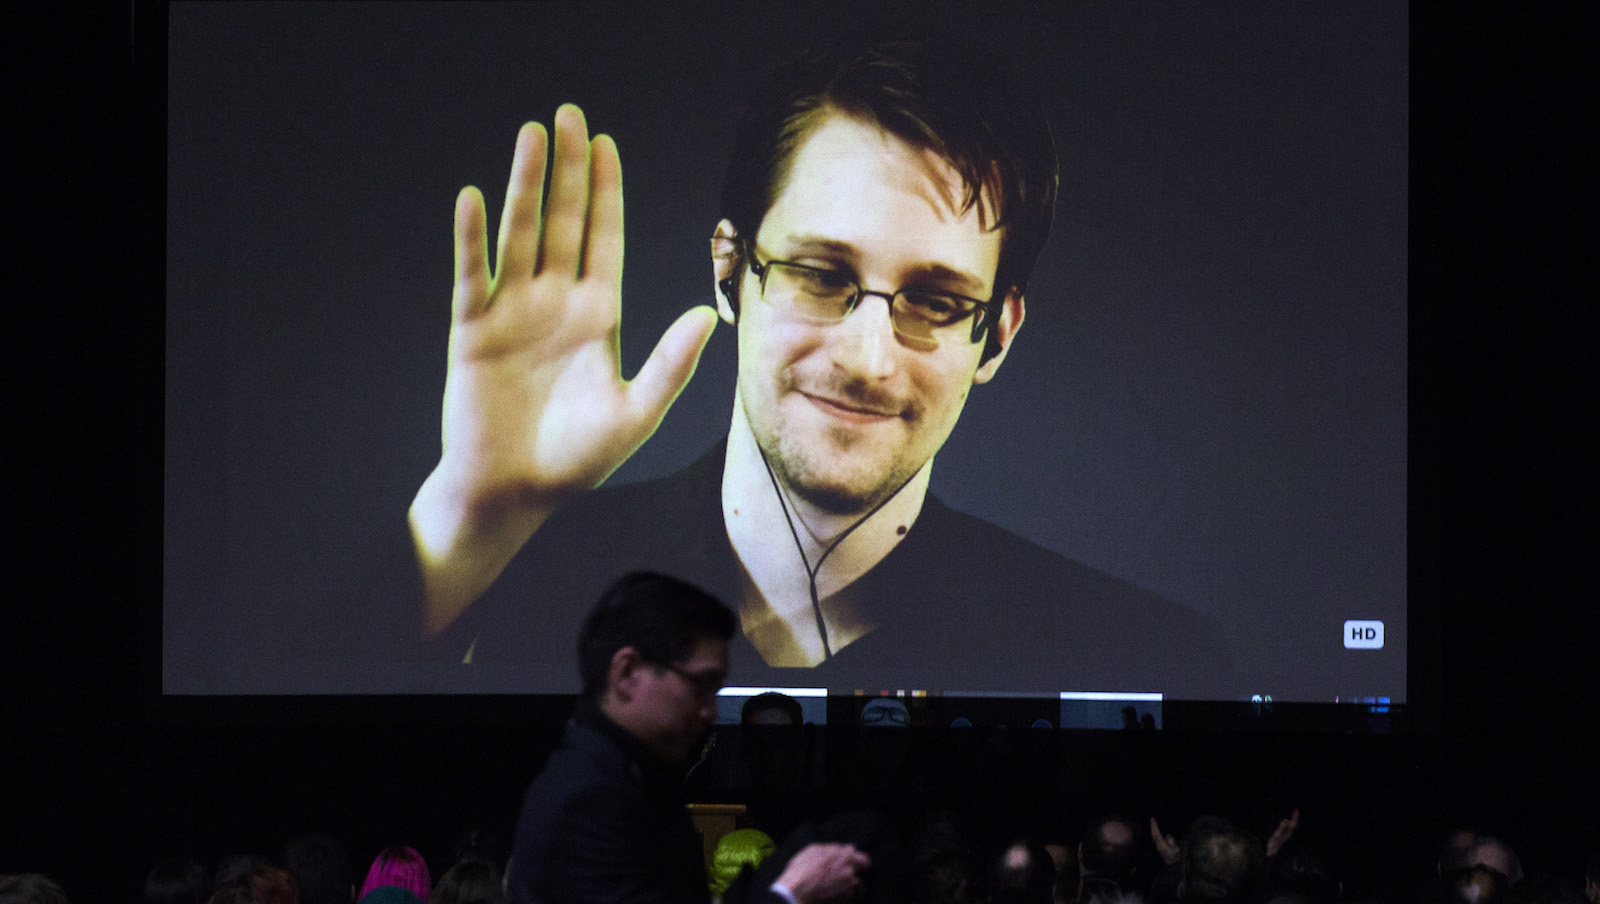 Former U.S. National Security Agency contractor Edward Snowden appears live via video during a student organized world affairs conference at the Upper Canada College private high school in Toronto, February 2, 2015.    REUTERS/Mark Blinch (CANADA - Tags: POLITICS SCIENCE TECHNOLOGY MEDIA EDUCATION) - RTR4NZE6